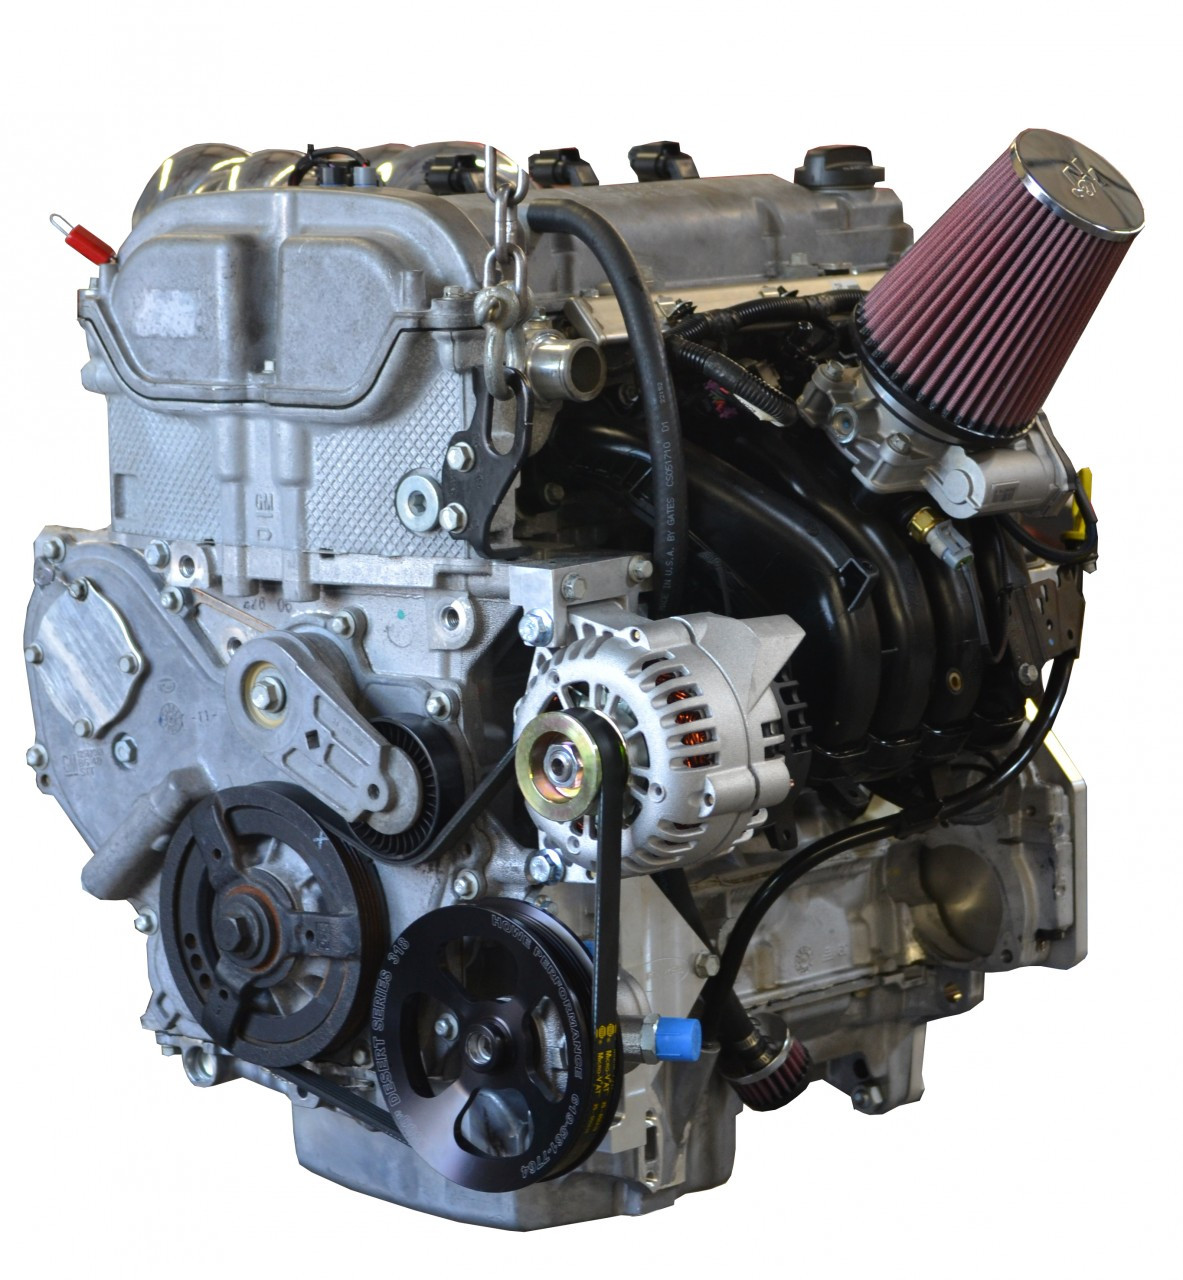 Nissan 3l Engine Diagram 3 additionally 2017 Chevrolet Silverado 2500hd Reviews And Rating Motor furthermore Chevy 4 3l V6 Performance additionally Gm 5 3 Engines Forum as well Dmca  pliance. on gm 4 3l v6 ecotec3 lv3 engine